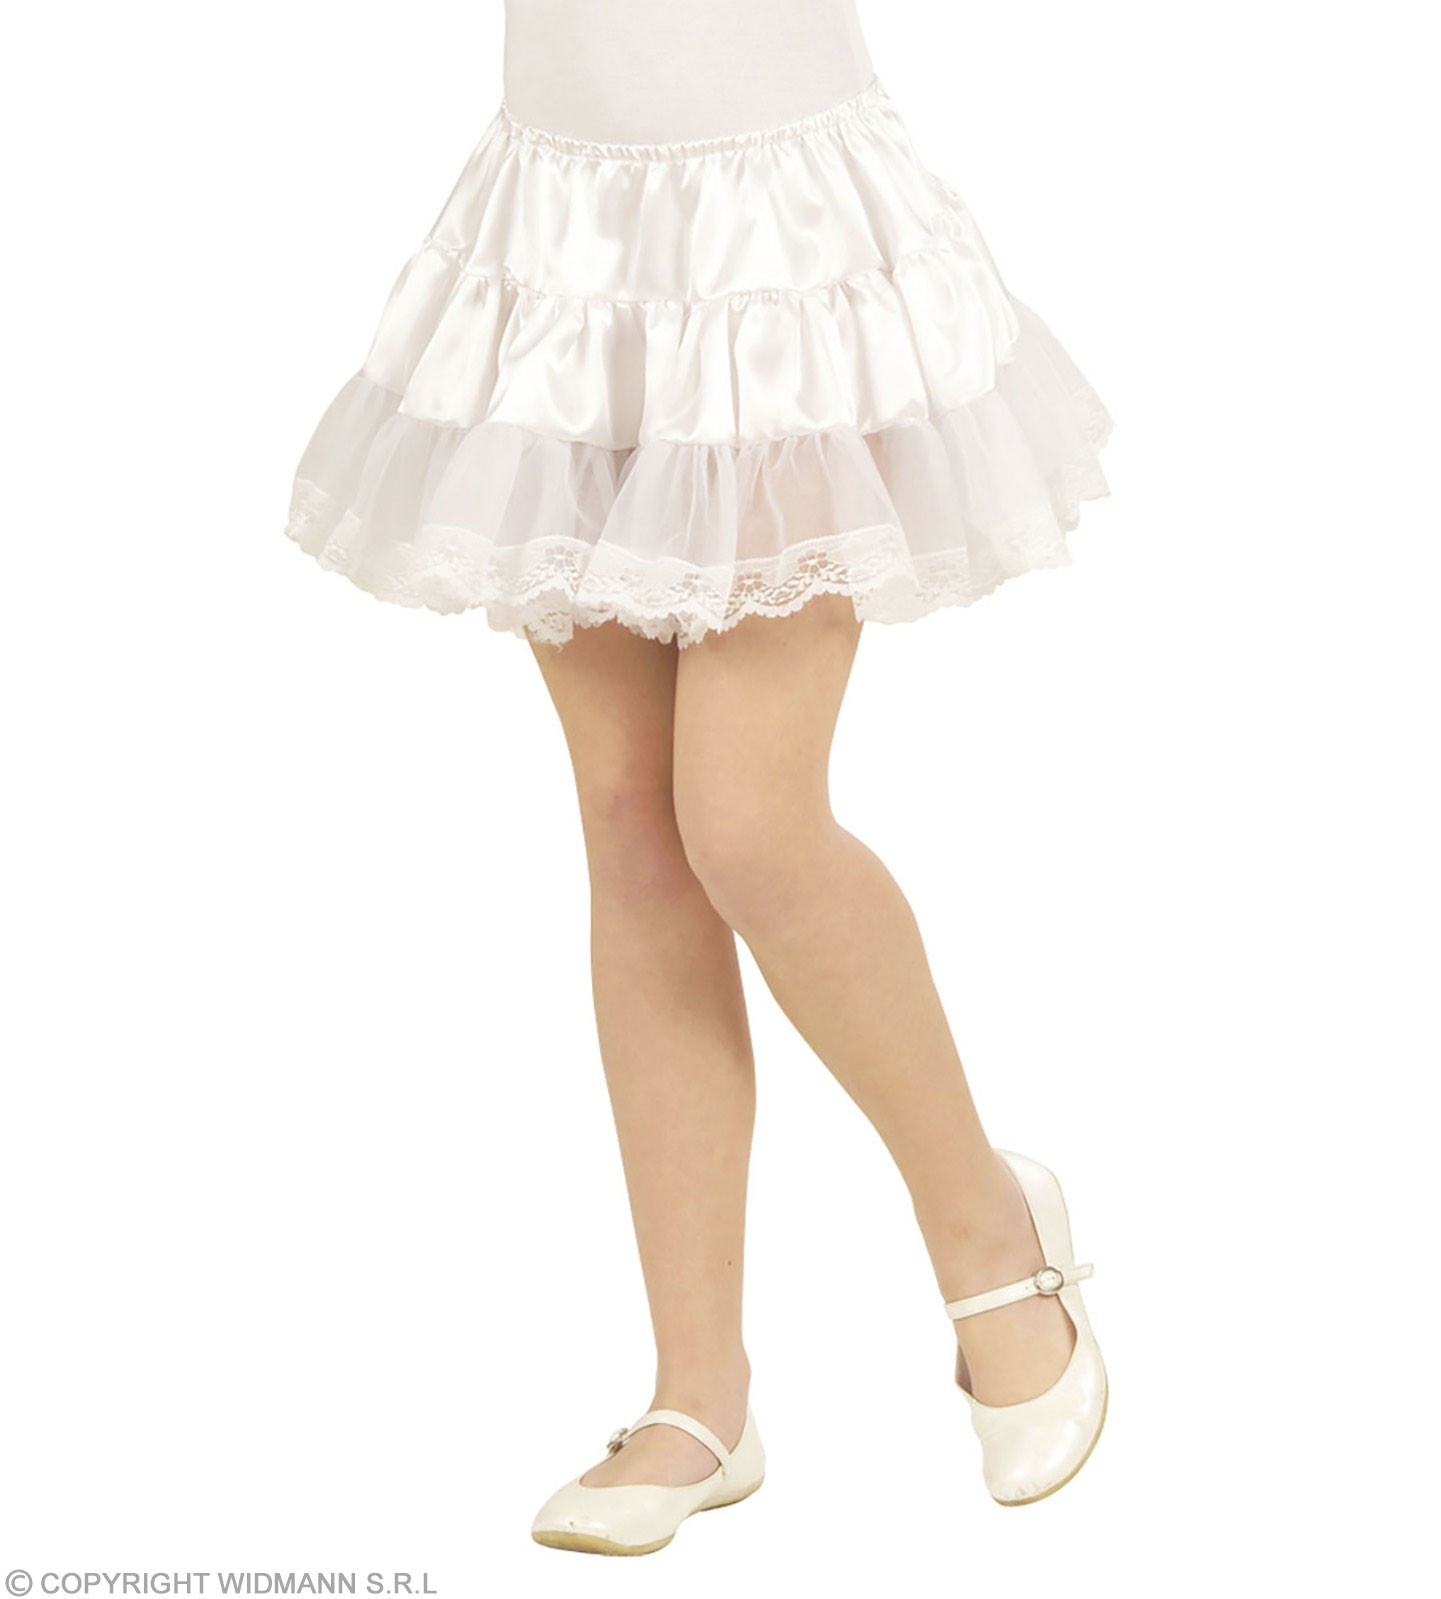 Child Size Satin & Lace White Petticoats Fancy Dress